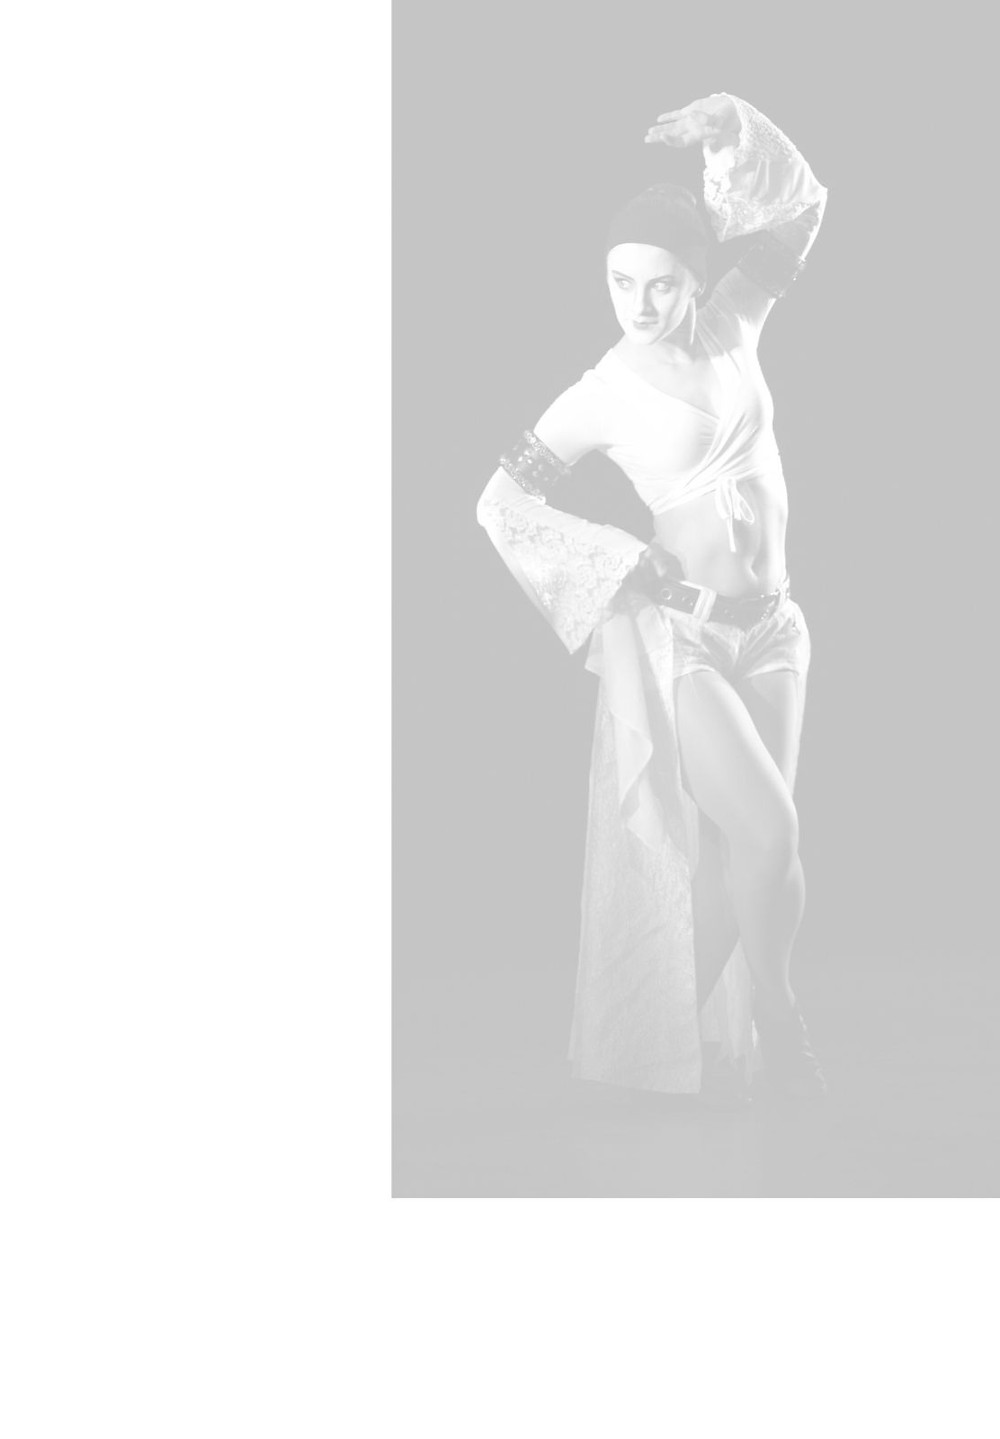 NIPAI Online Courses / Physical Theatre Directing / Play Analysis / Ensemble Building / Choreography